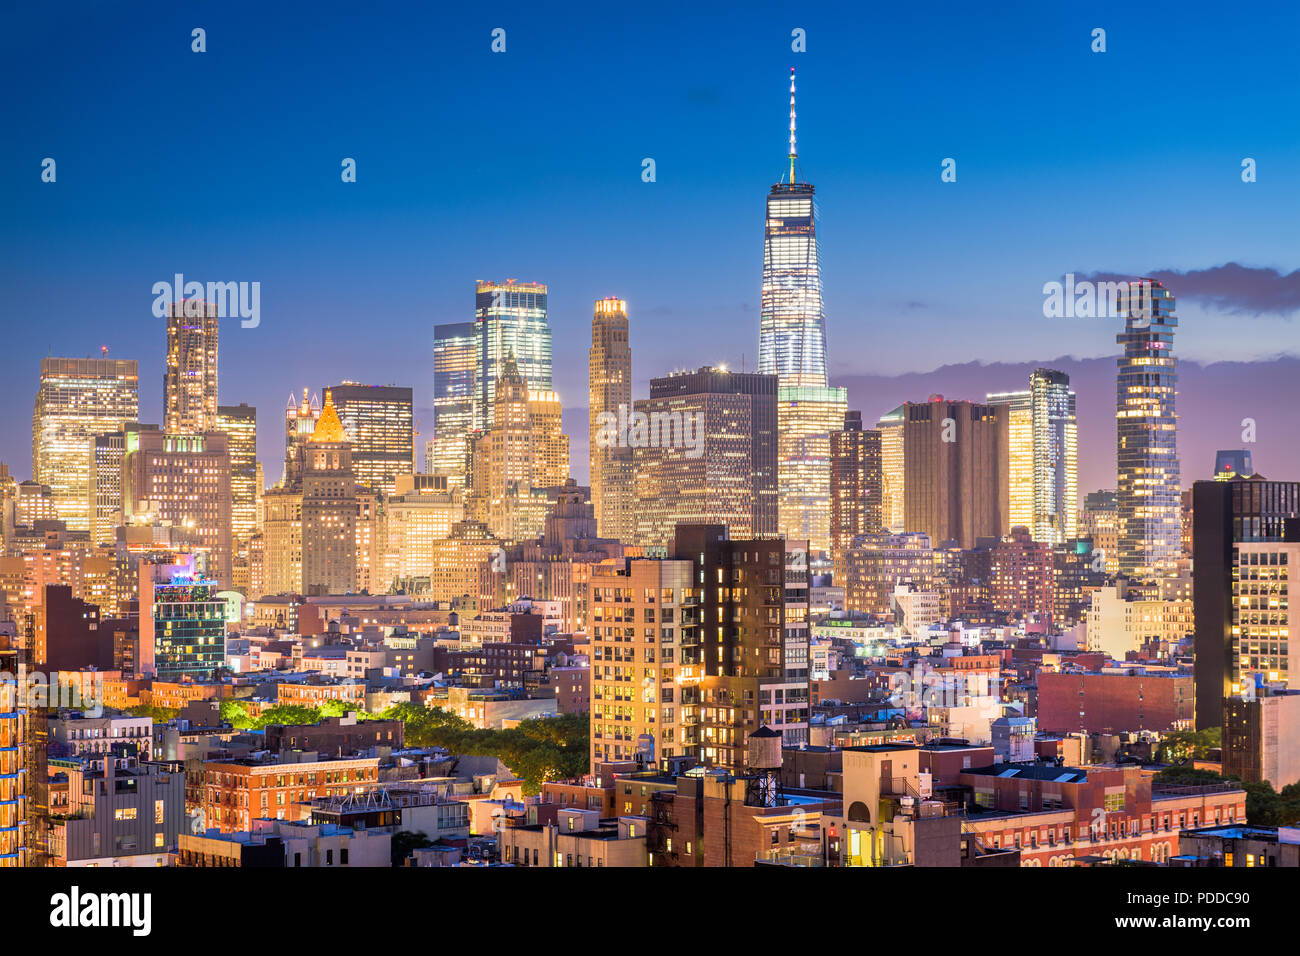 New York, New York, USA Financial district skyline from the Lower East Side at dusk. - Stock Image